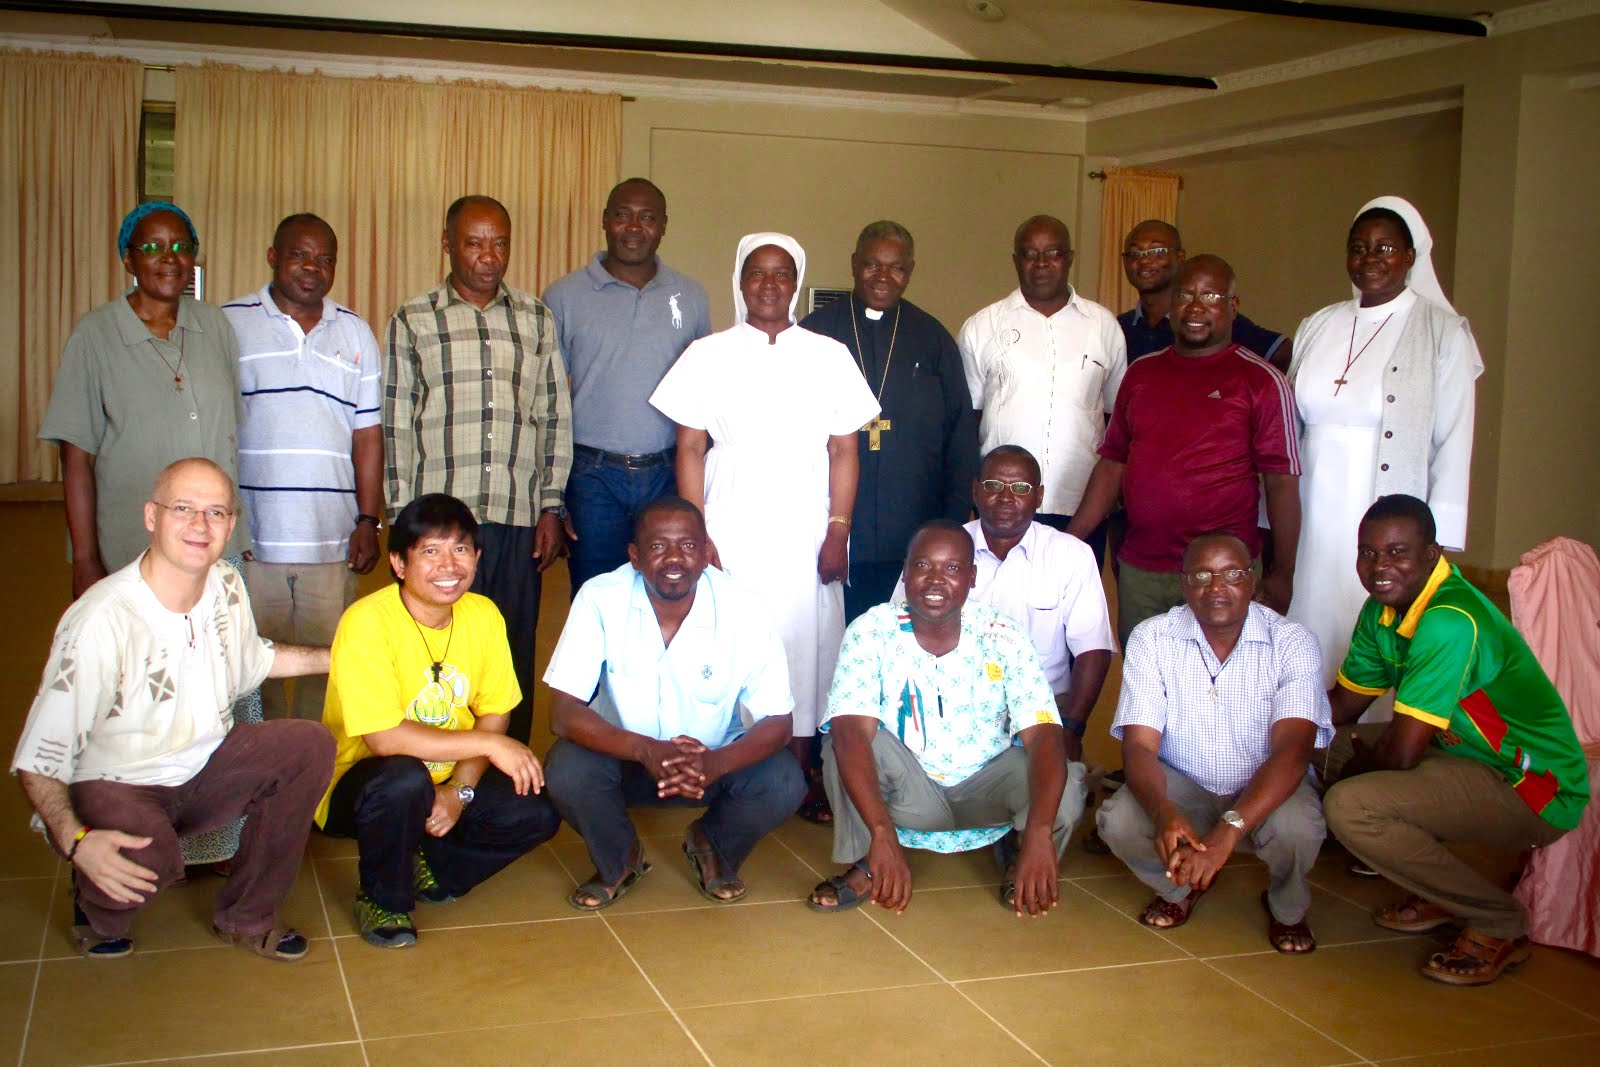 PARTICIPANTS WITH THE BISHOP OF MOROGORO TELESPHOR MKUDE